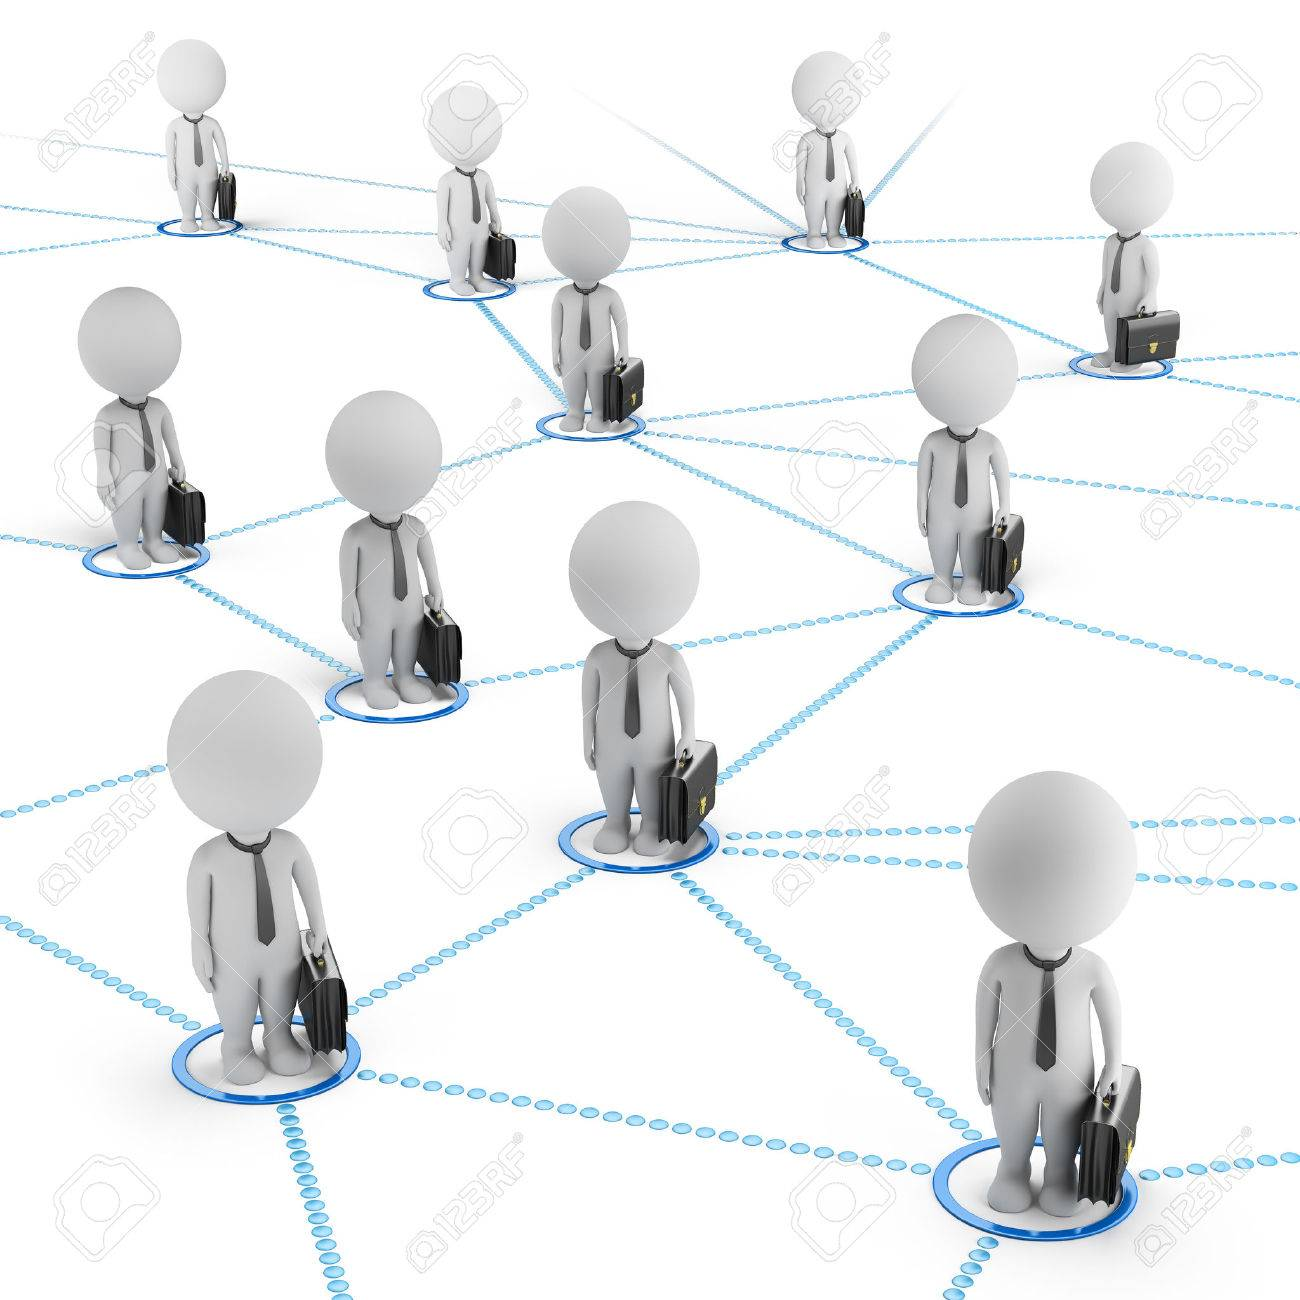 3d small people - businessmen standing in the global network of cells  3d image  White background Stock Photo - 29691196